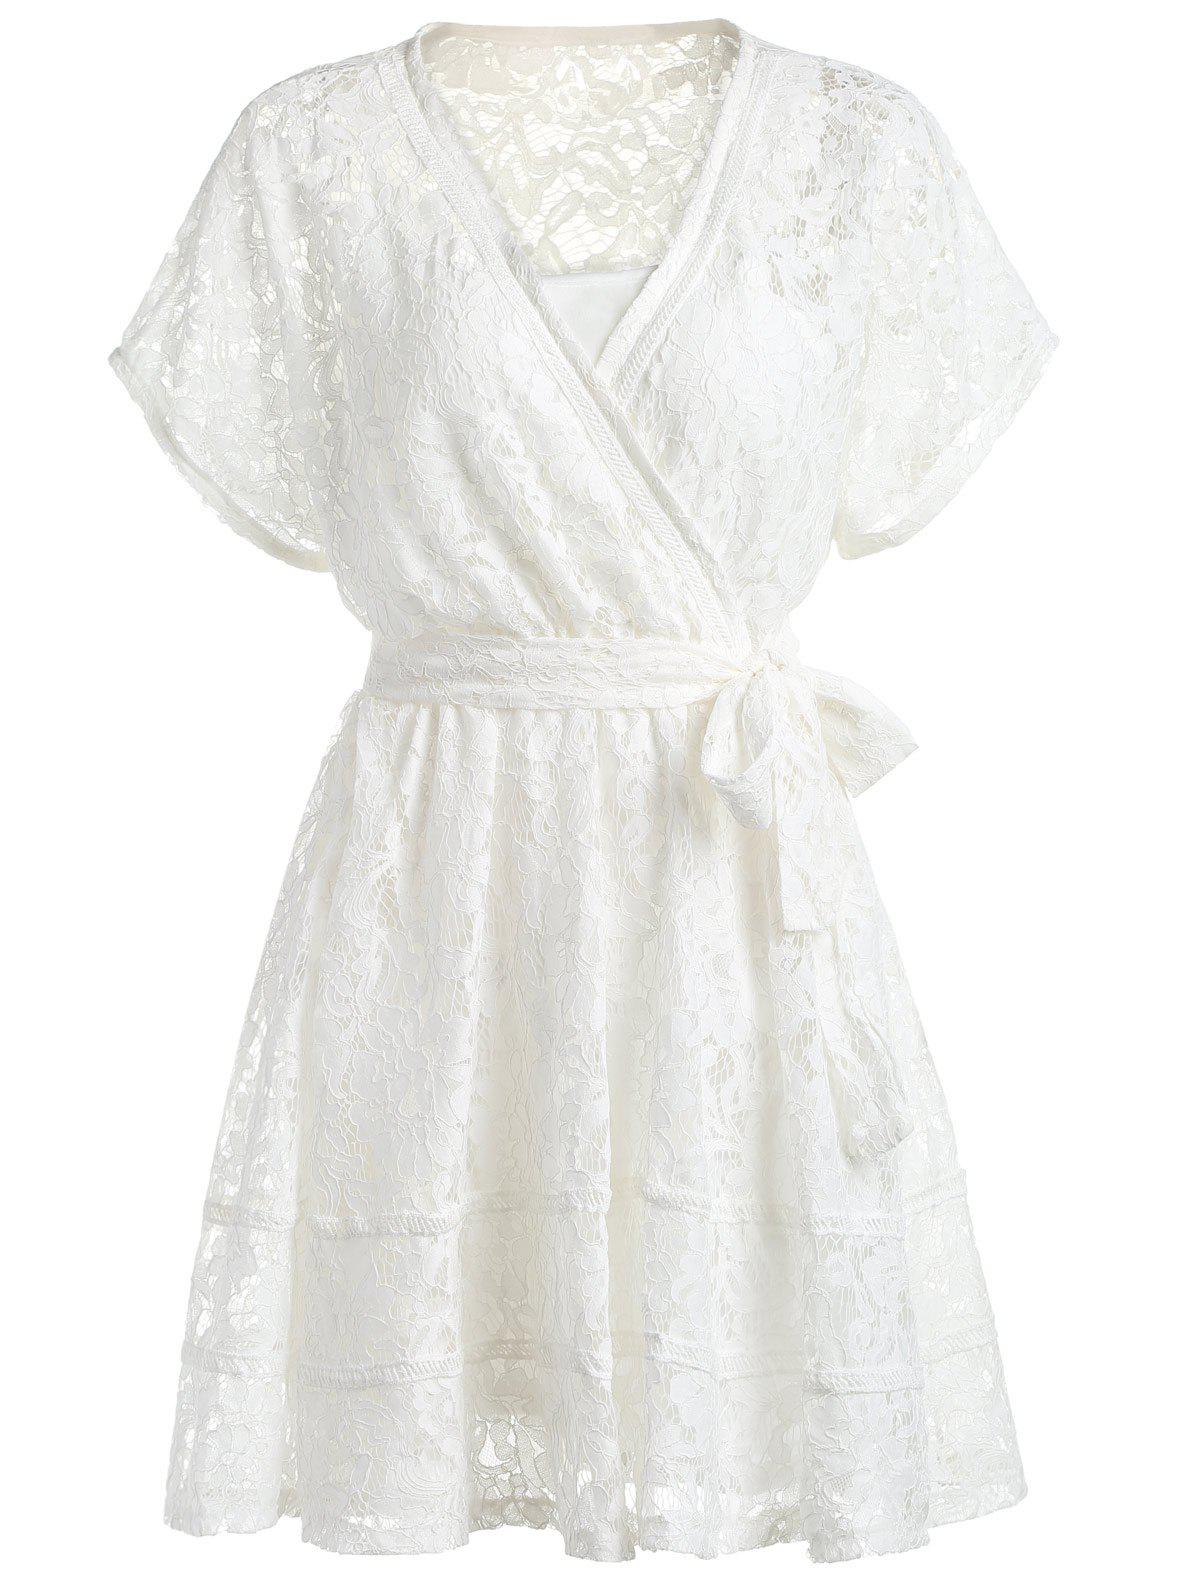 Sweet Women's Cami Dress and Plunging Neck Cap Sleeve Tied Lace Dress Set - WHITE ONE SIZE(FIT SIZE XS TO M)